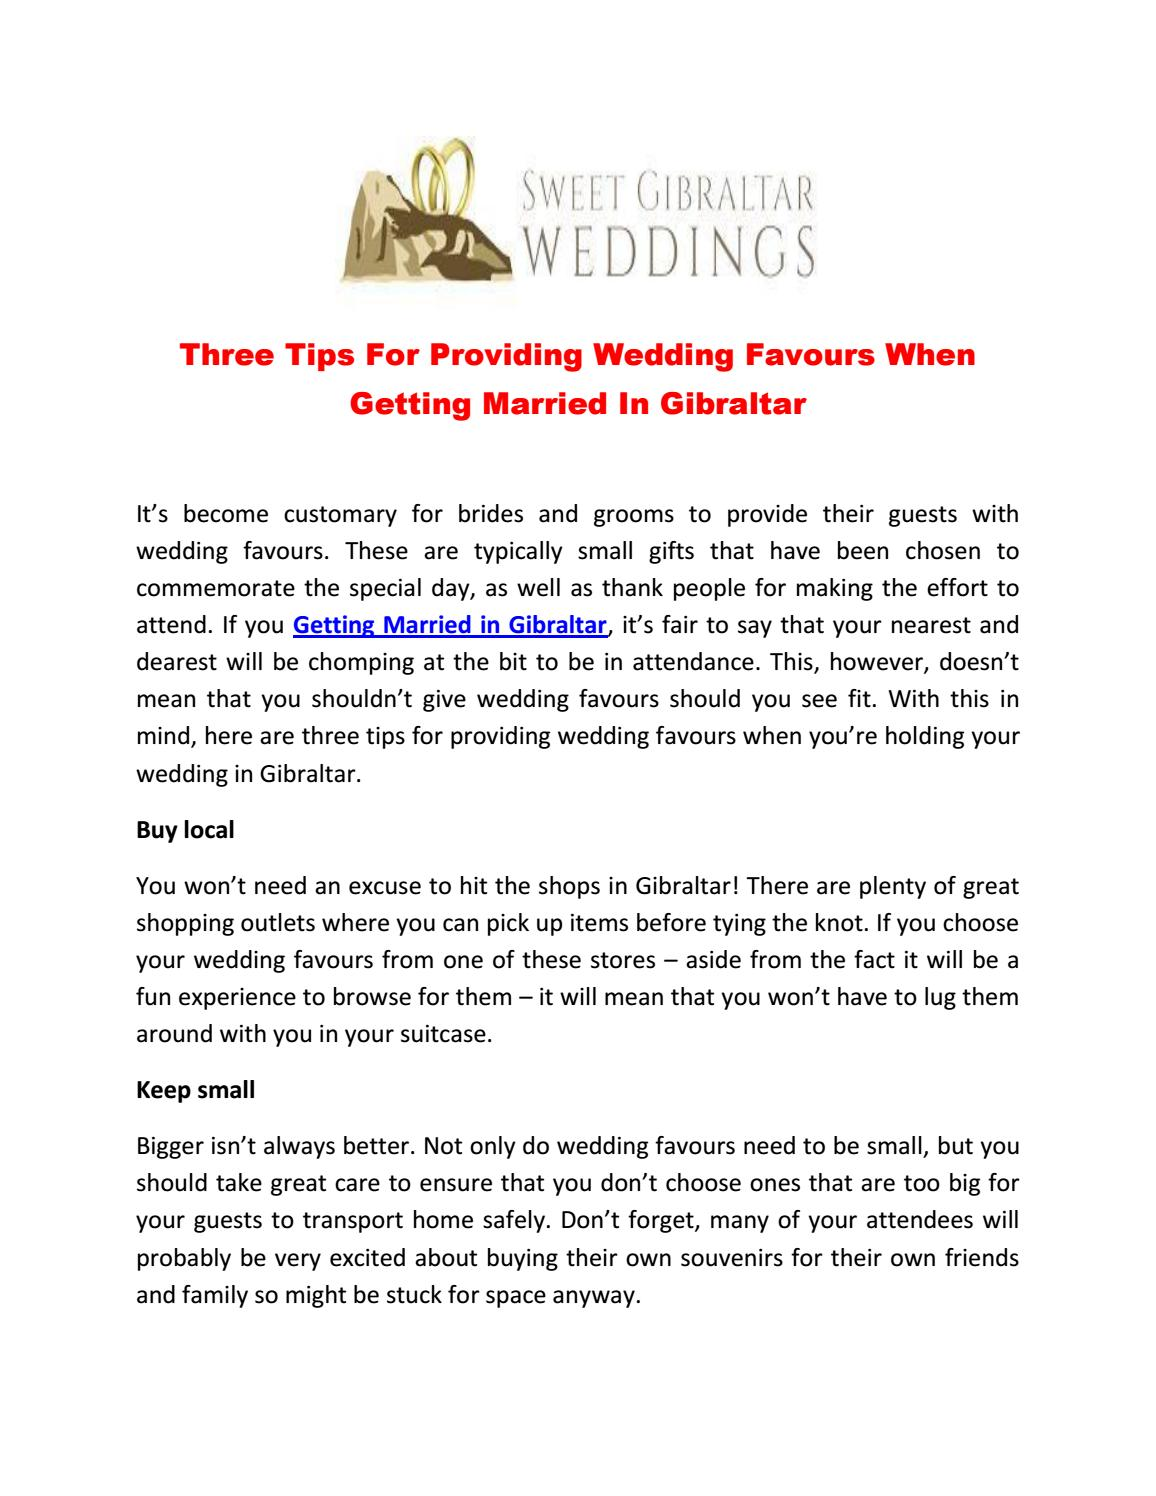 Three Tips For Providing Wedding Favours When Getting Married In